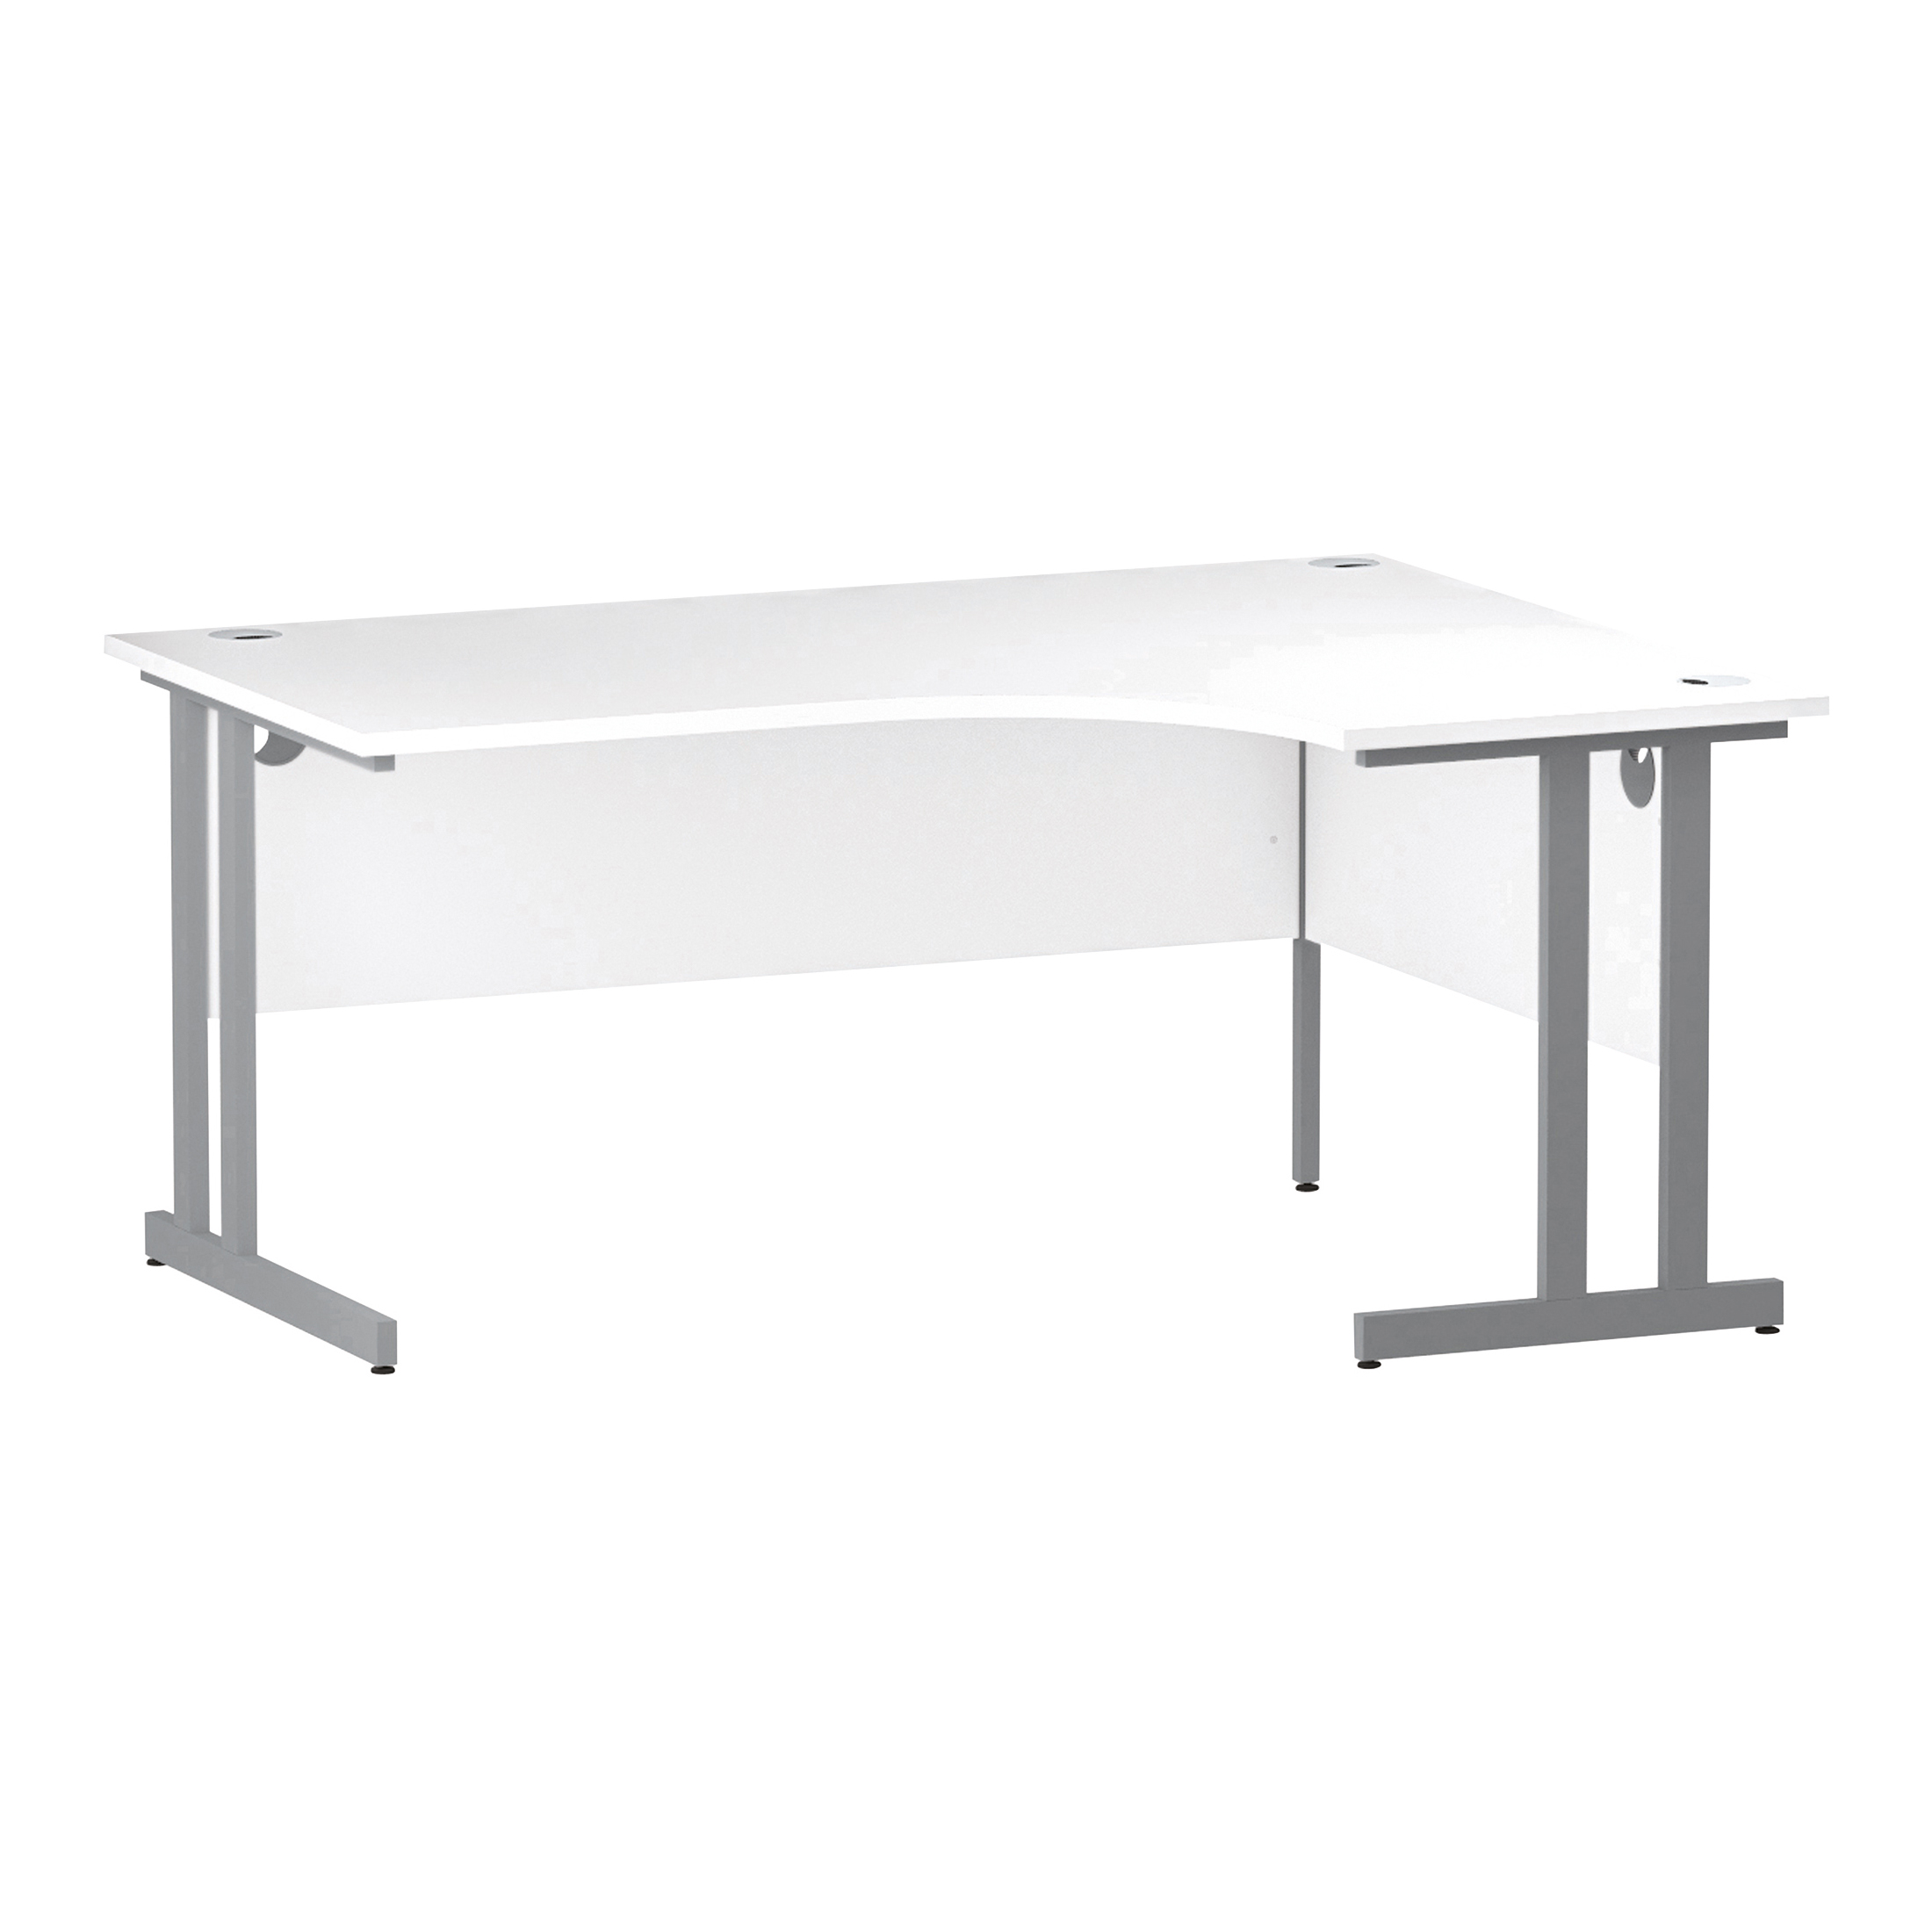 Trexus Radial Desk Right Hand Silver Cantilever Leg 1600mm White Ref I000322